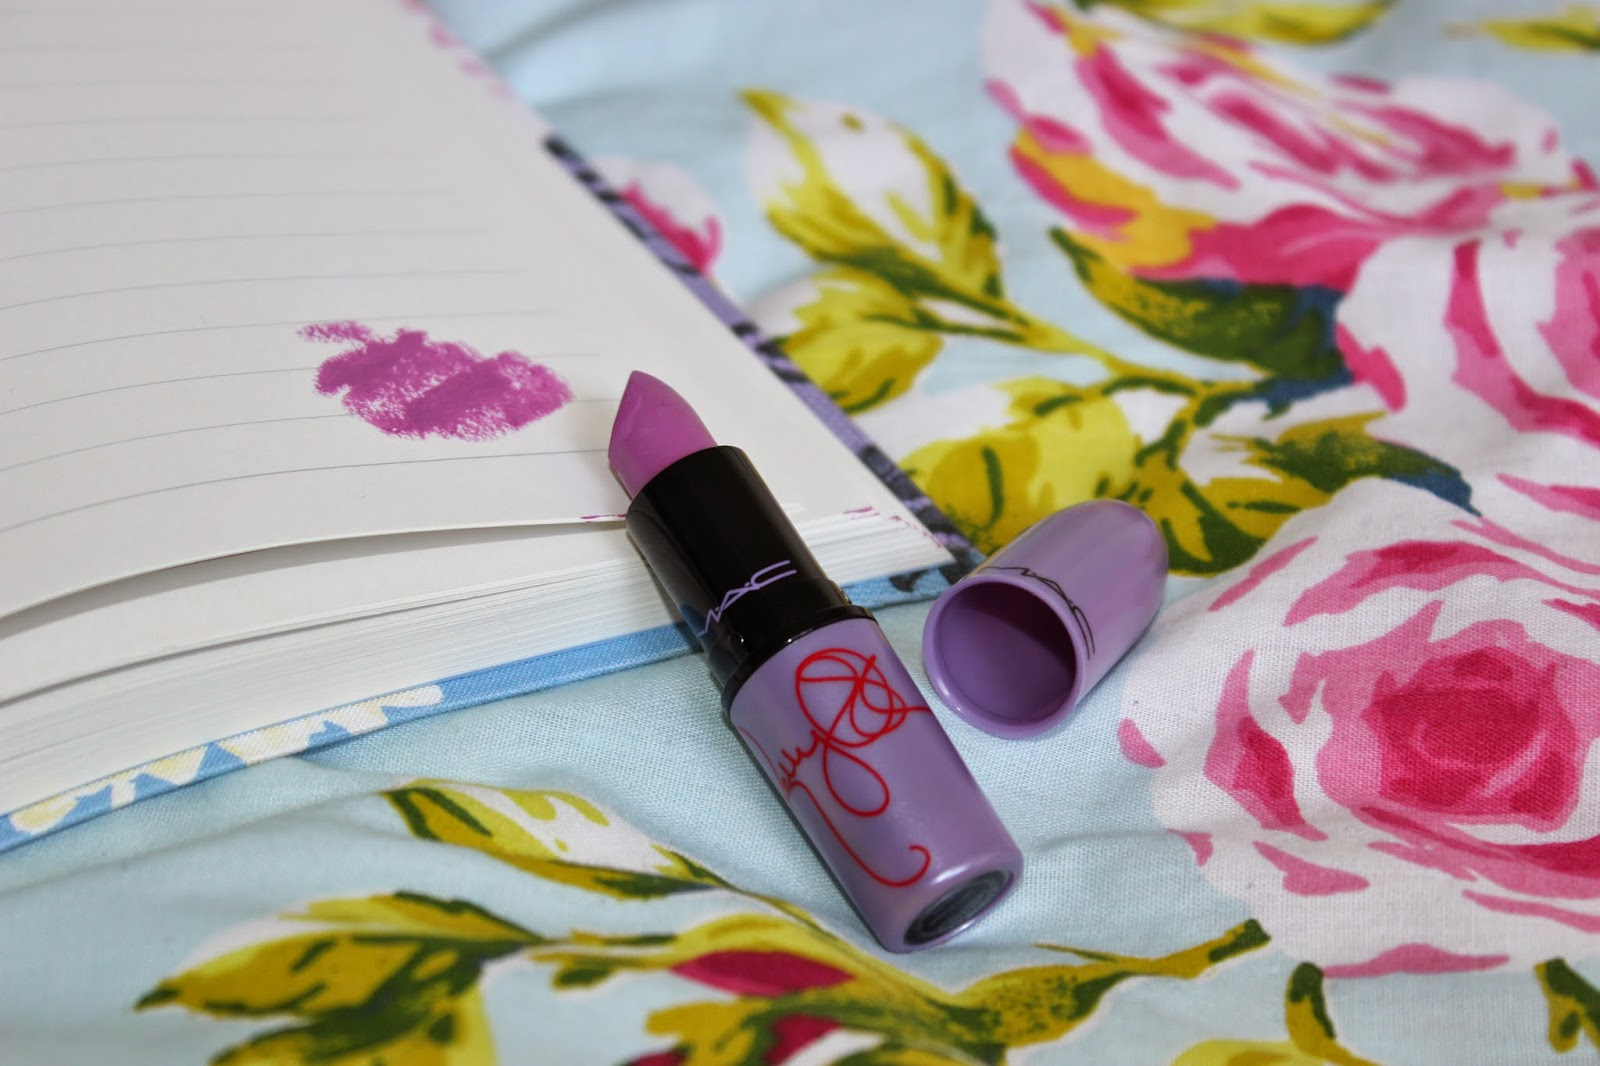 MAC Kelly Osbourne Dodgy Girl Lipstick Review Swatch L'amour Josie